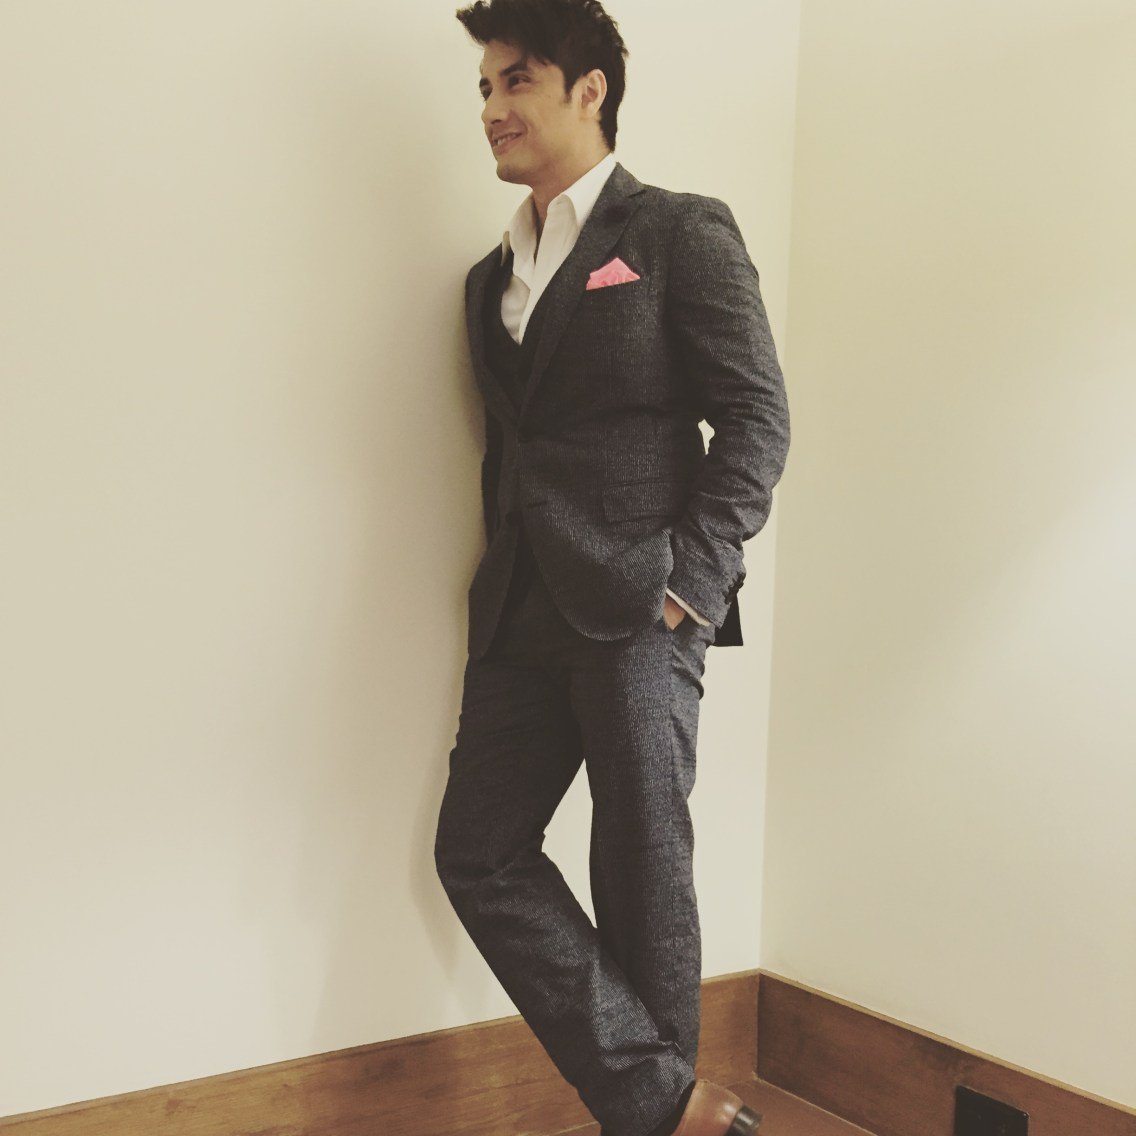 Ali Zafar wins 'Delhi's Most Stylish Import Award' at HT Style Awards Delhi